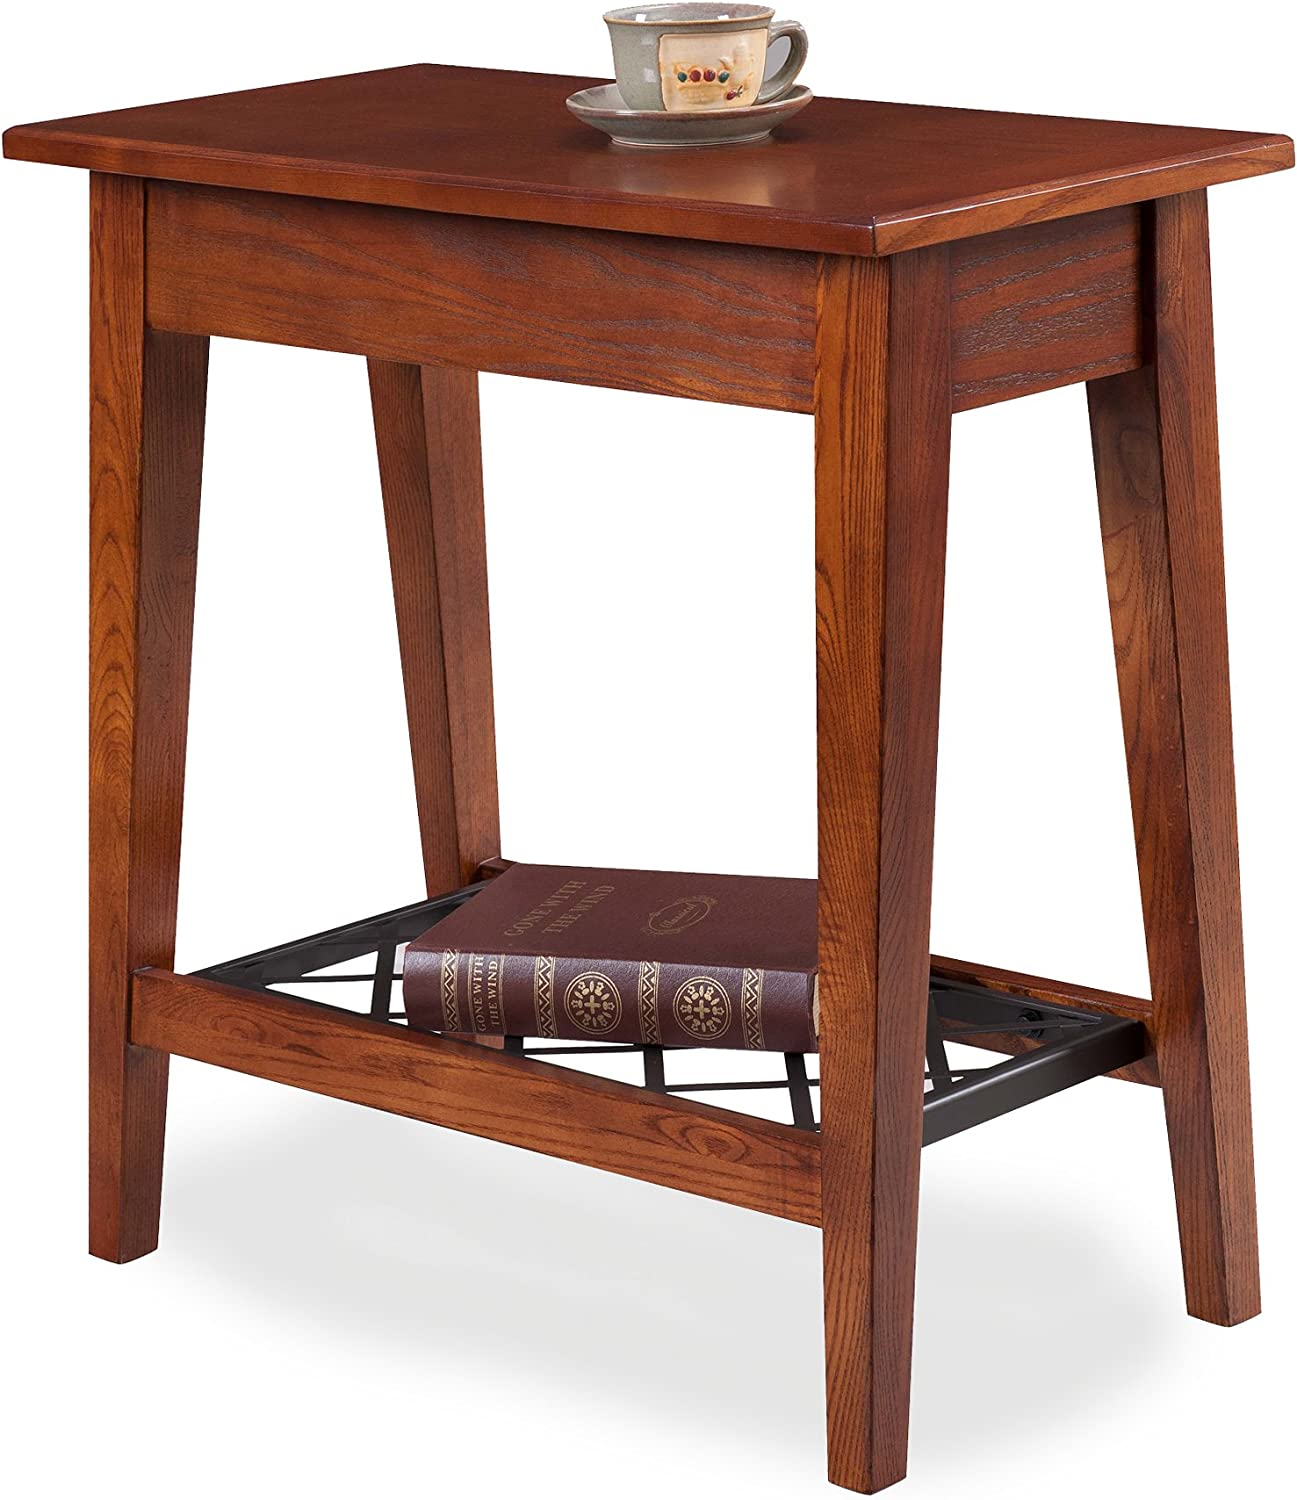 Leick 10205 Latisse Narrow Chairside Table